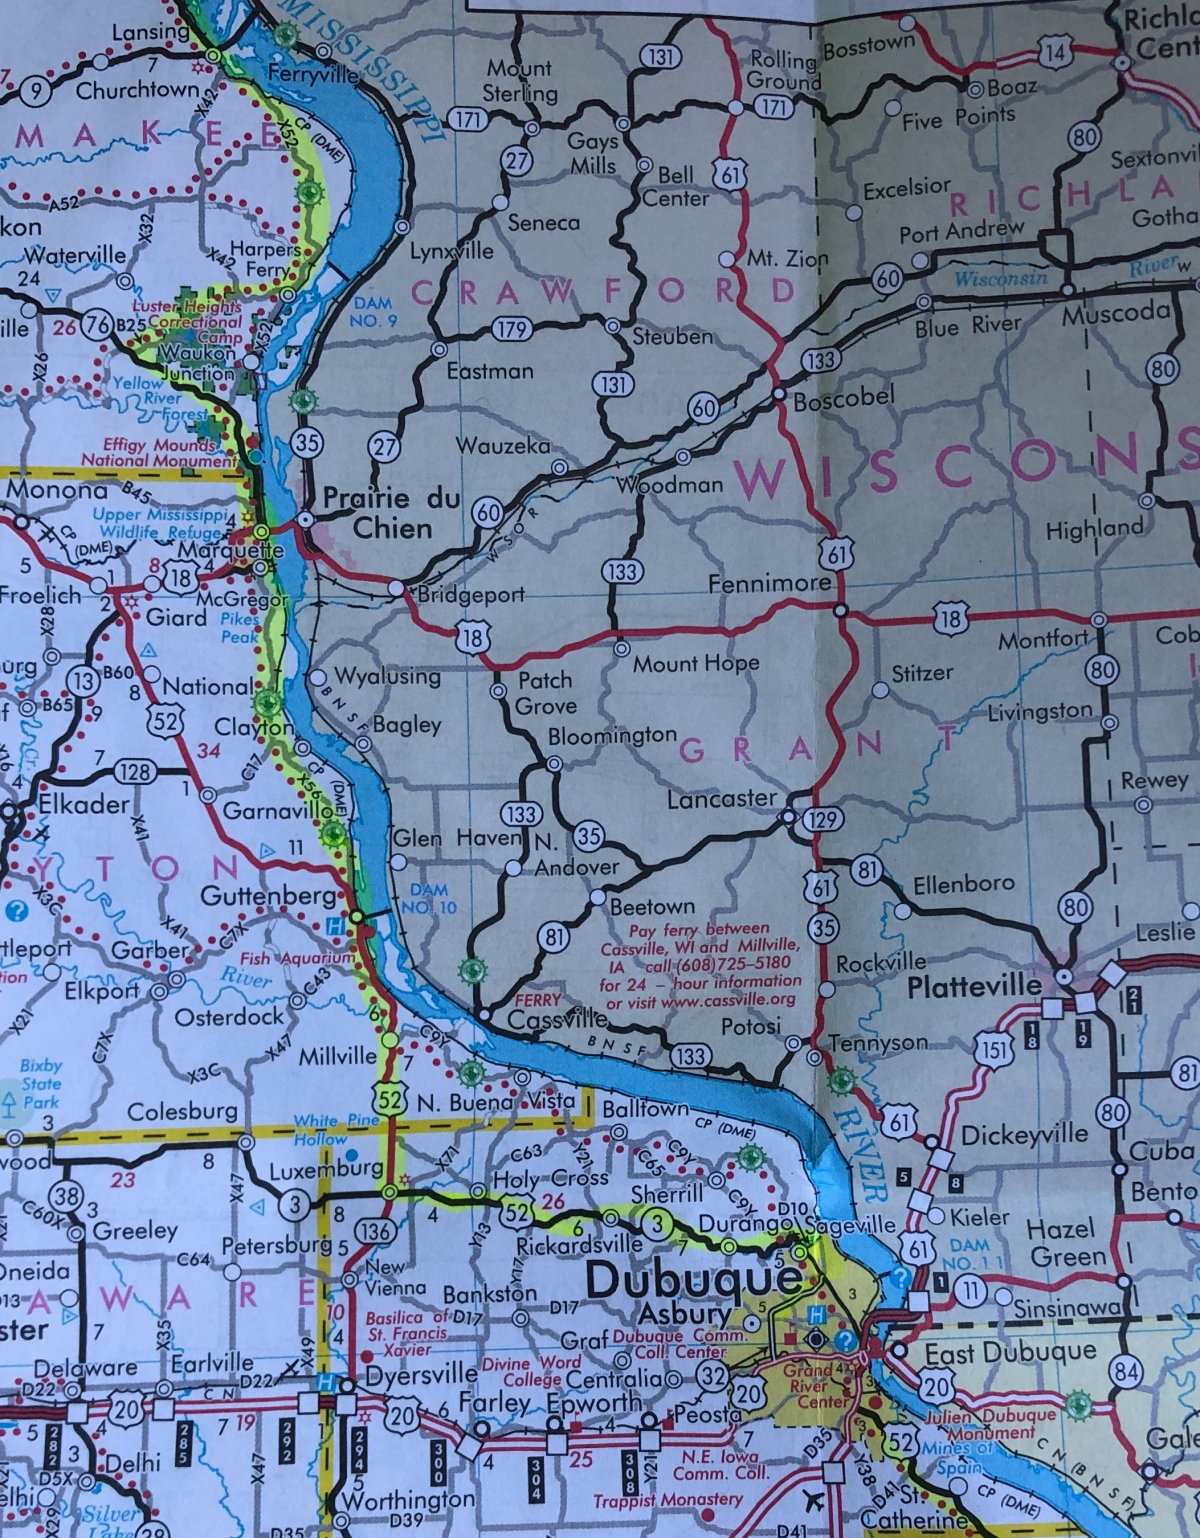 My Iowa route map along the Mississippi River